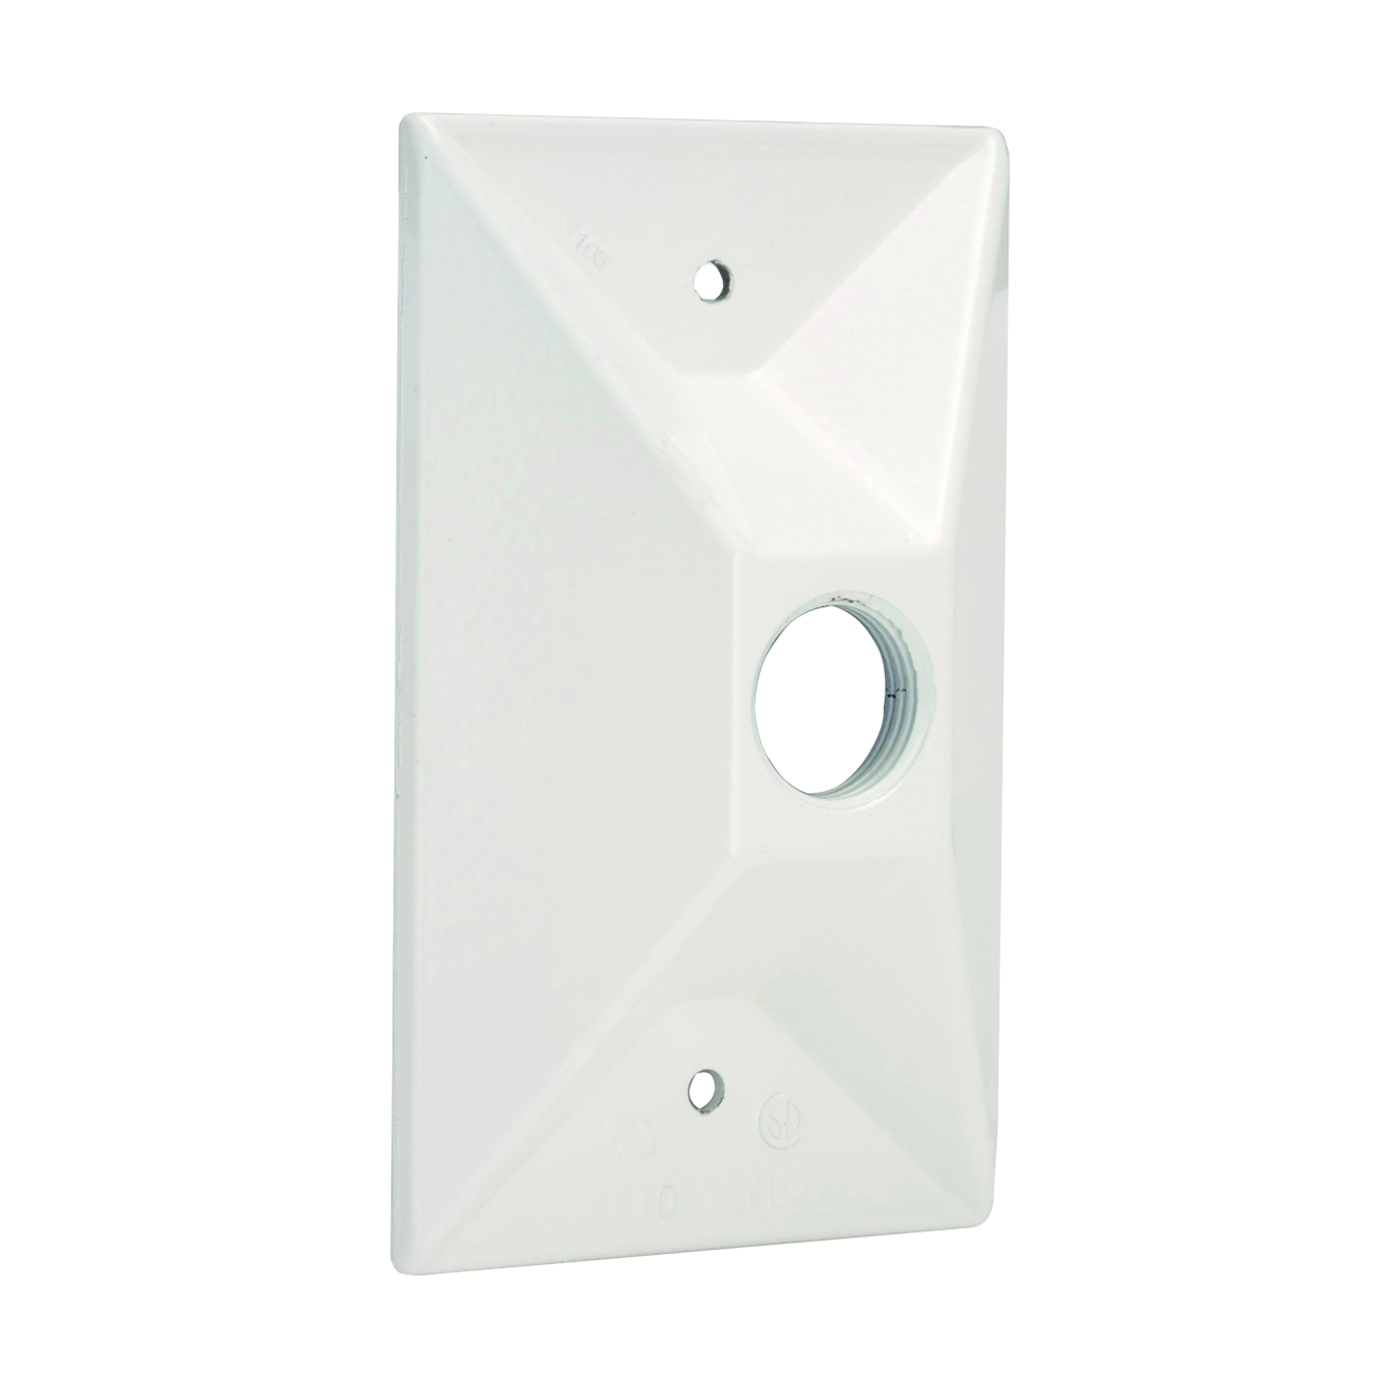 Picture of HUBBELL 5186-6 Cluster Cover, 4-19/32 in L, 2-27/32 in W, Rectangular, Zinc, White, Powder-Coated